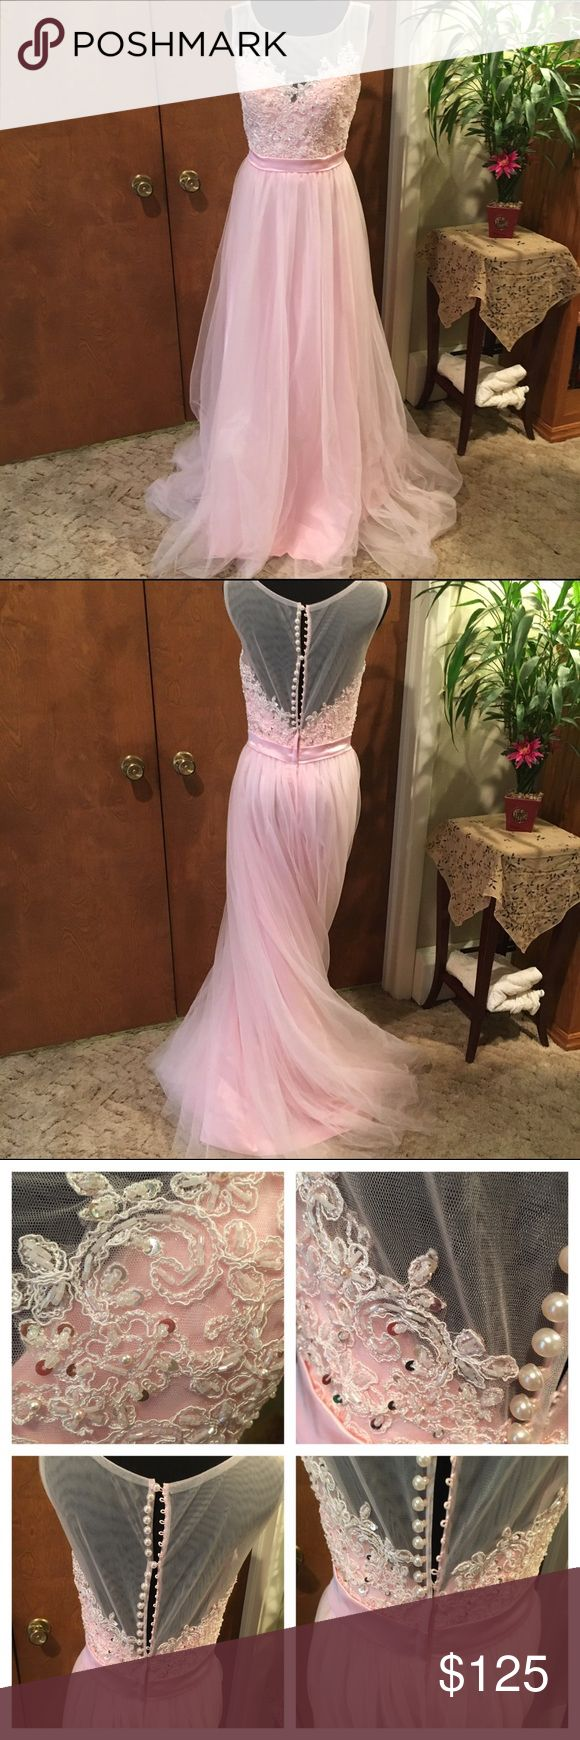 Spotted while shopping on Poshmark: Beautiful prom dress, size 8 ...